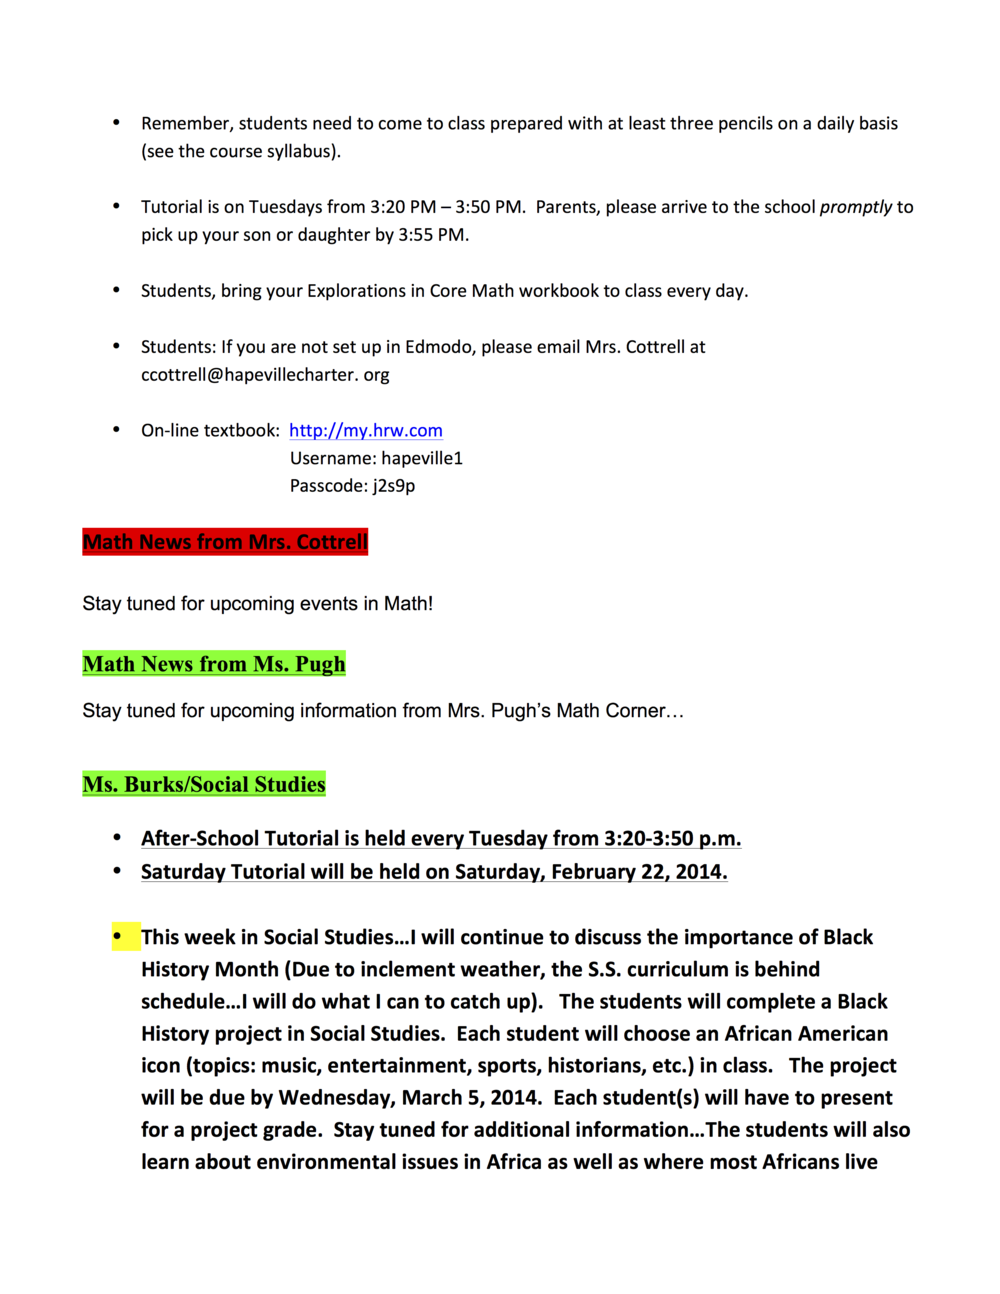 7th Newsletter for Monday, February 17, 2014B.png